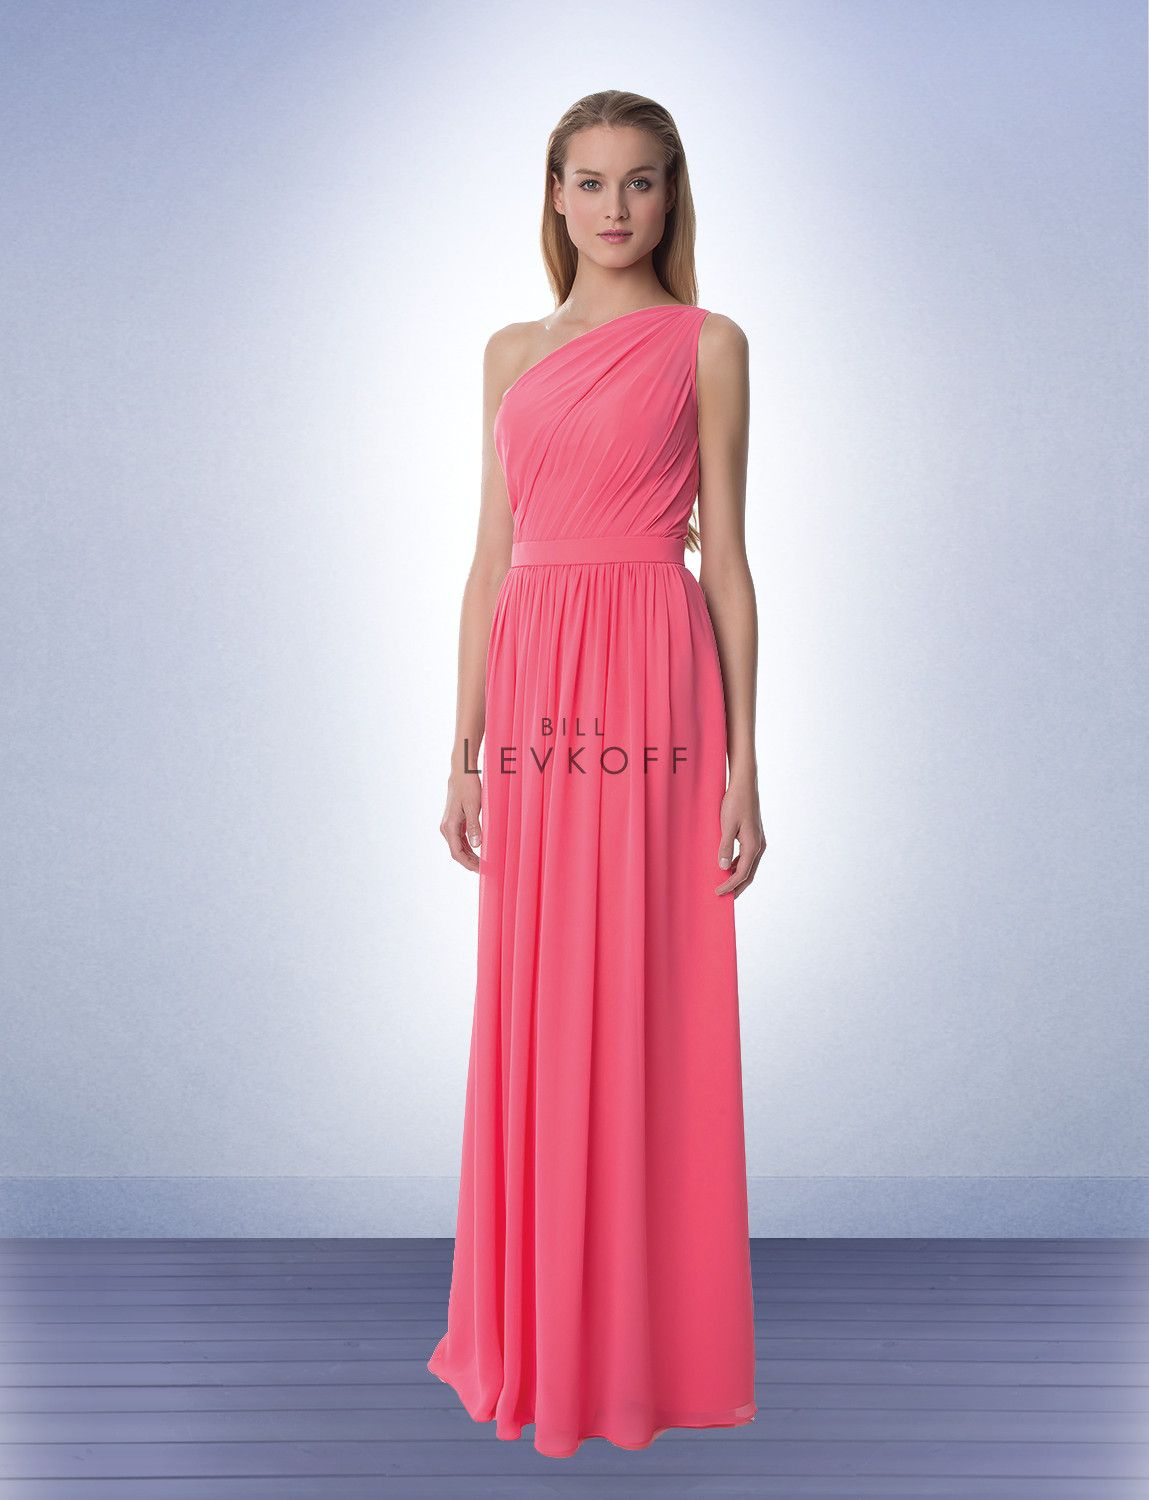 Bridesmaid dress style 991 bridesmaid dresses by bill levkoff bridesmaid dress style 991 bridesmaid dresses by bill levkoff one shoulder chiffon dress available at ombrellifo Image collections